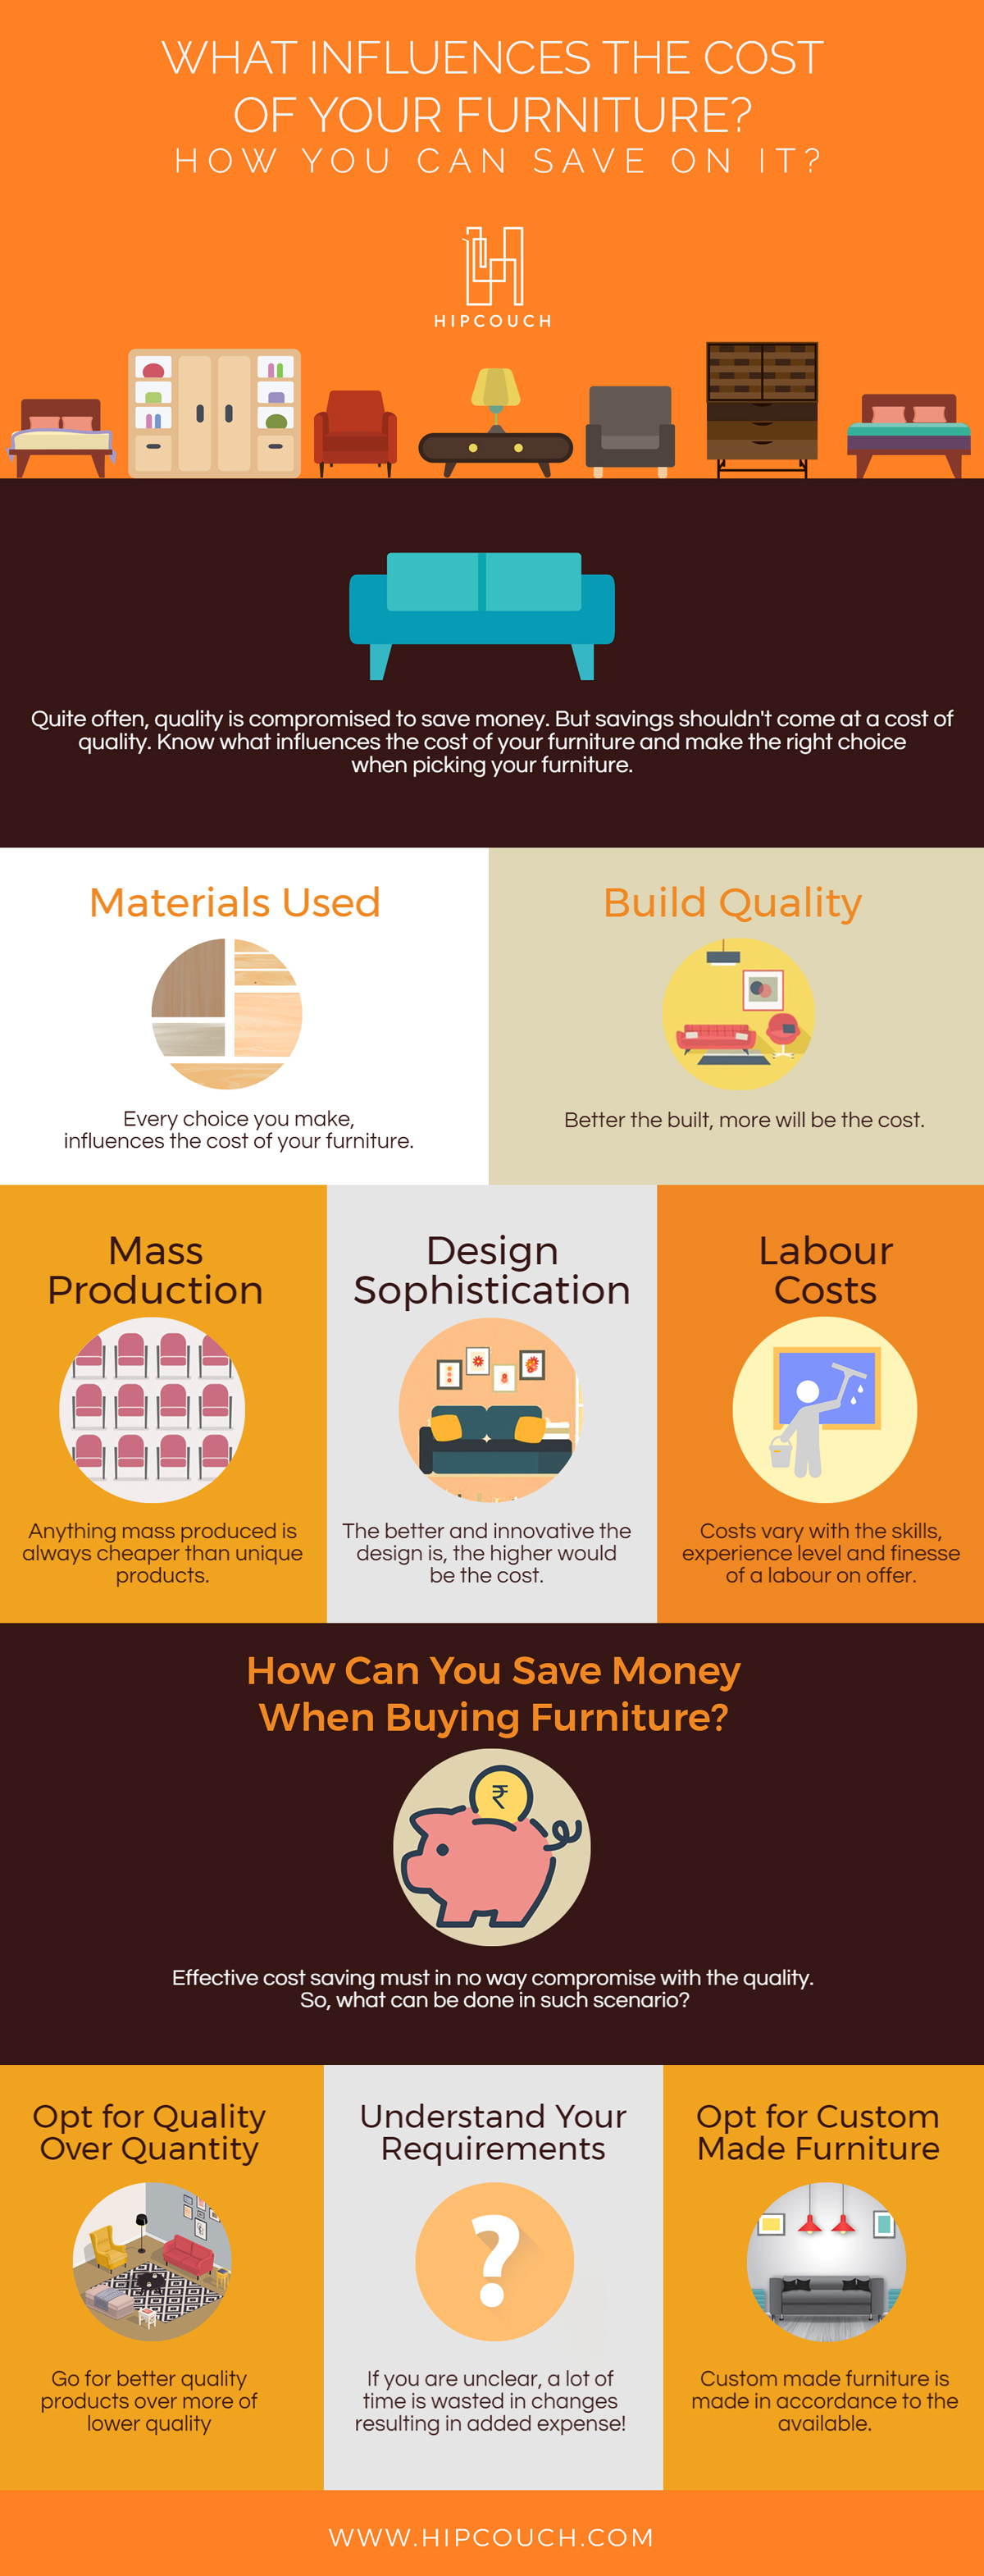 What Factors Influence the Cost of Your Furniture?